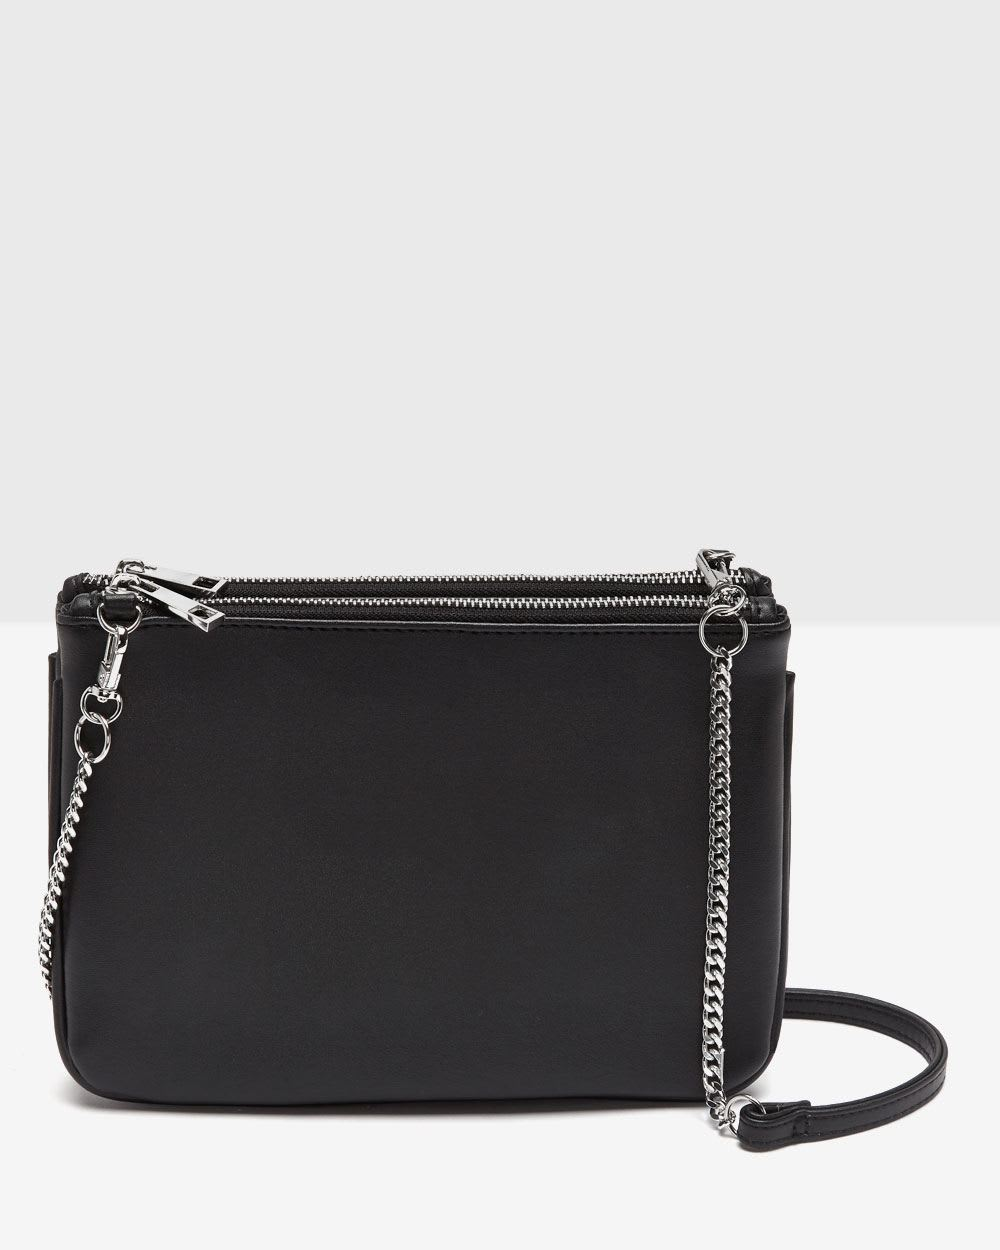 Black Faux Leather Crossbody Bag 58